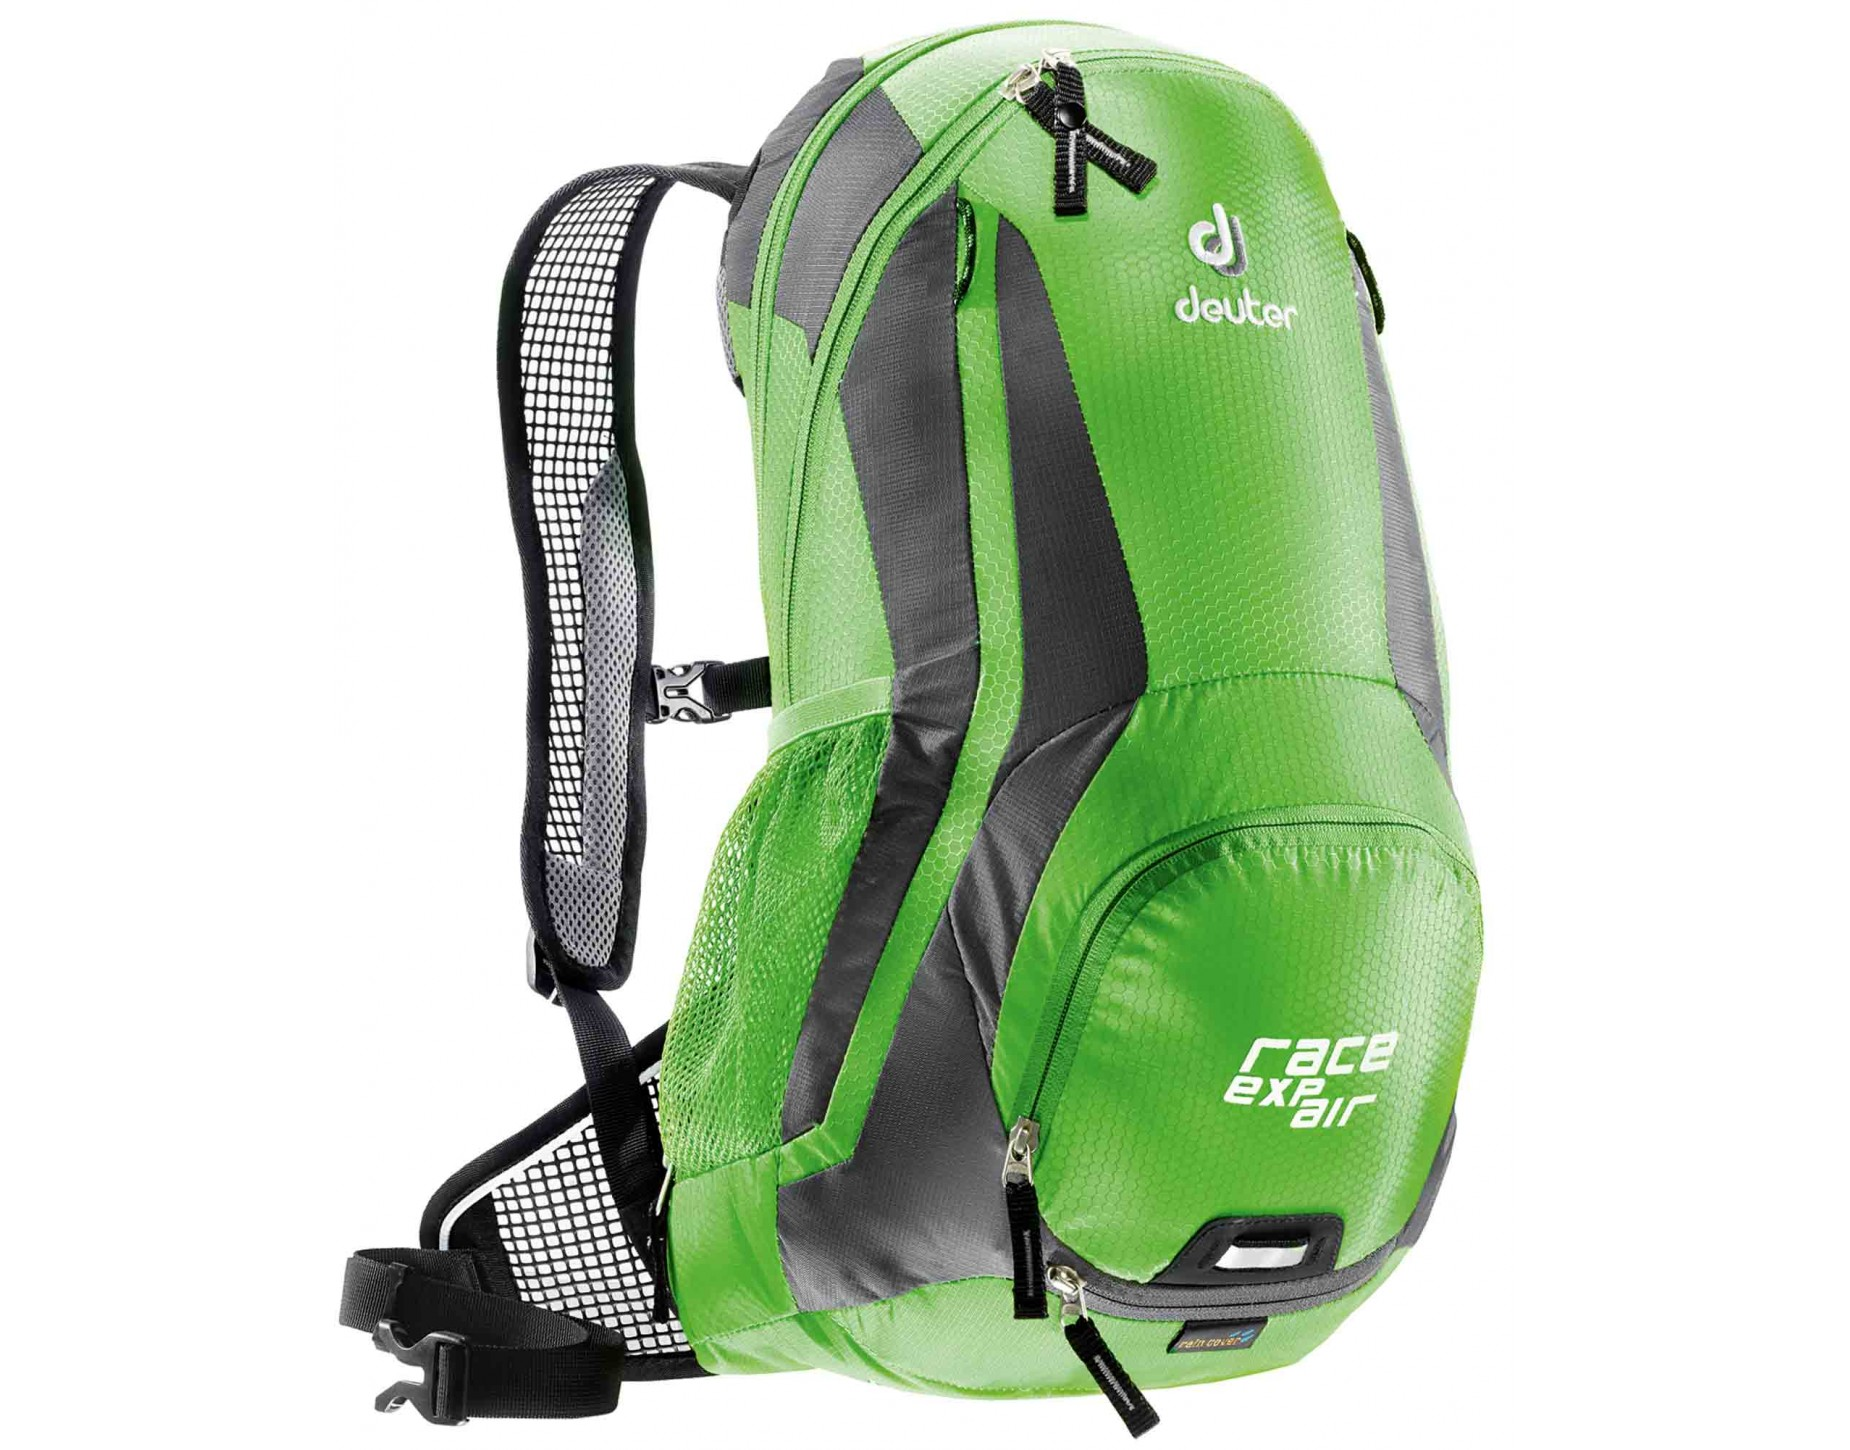 deuter race exp air backpack offers at the cycling shop. Black Bedroom Furniture Sets. Home Design Ideas